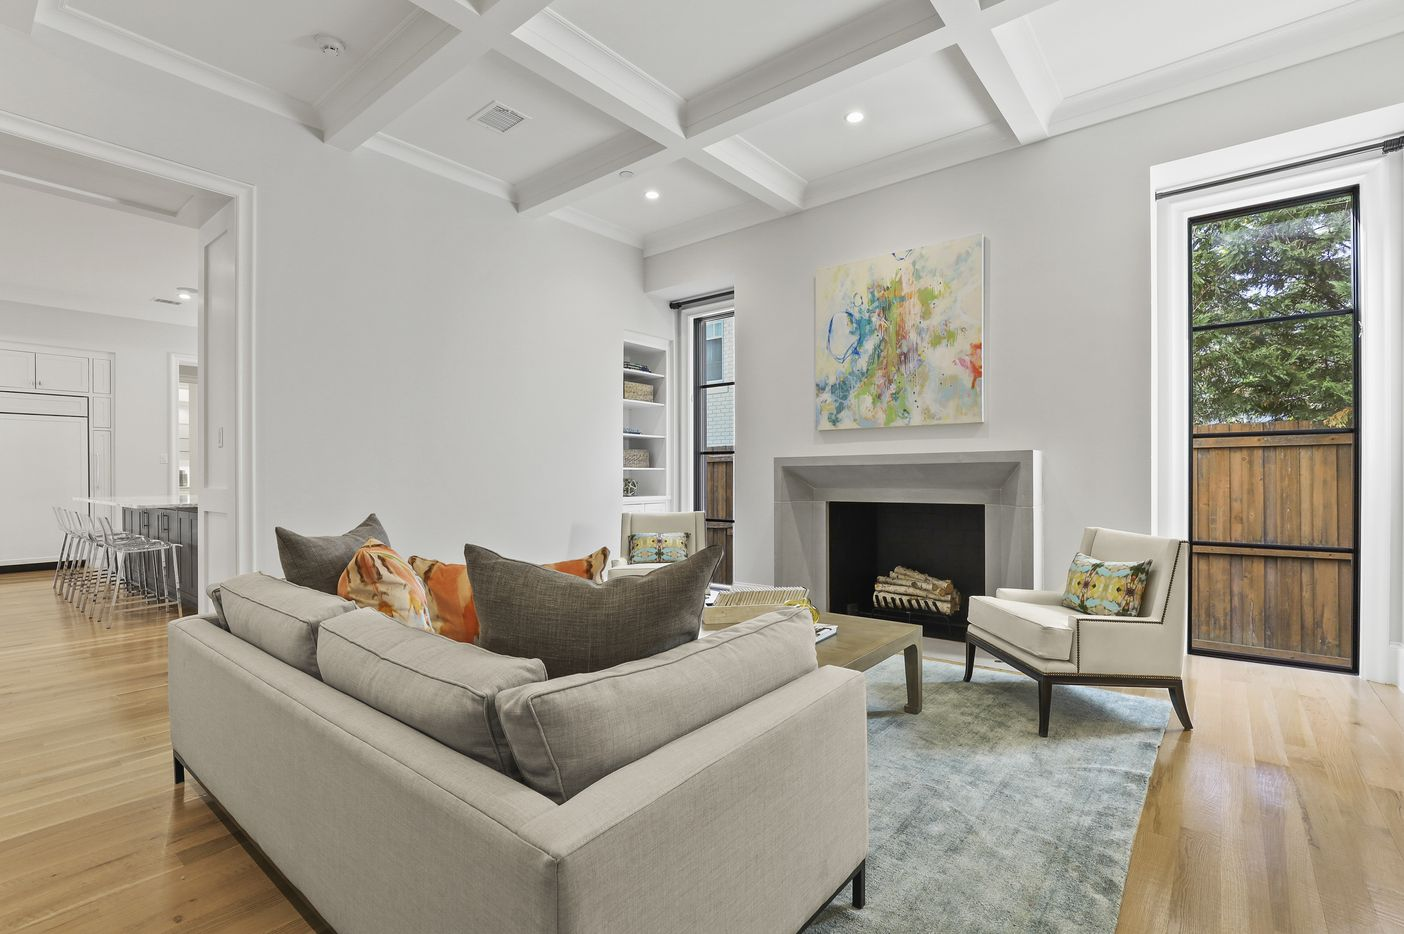 A look at the property at 3414 Beverly in Highland Park.